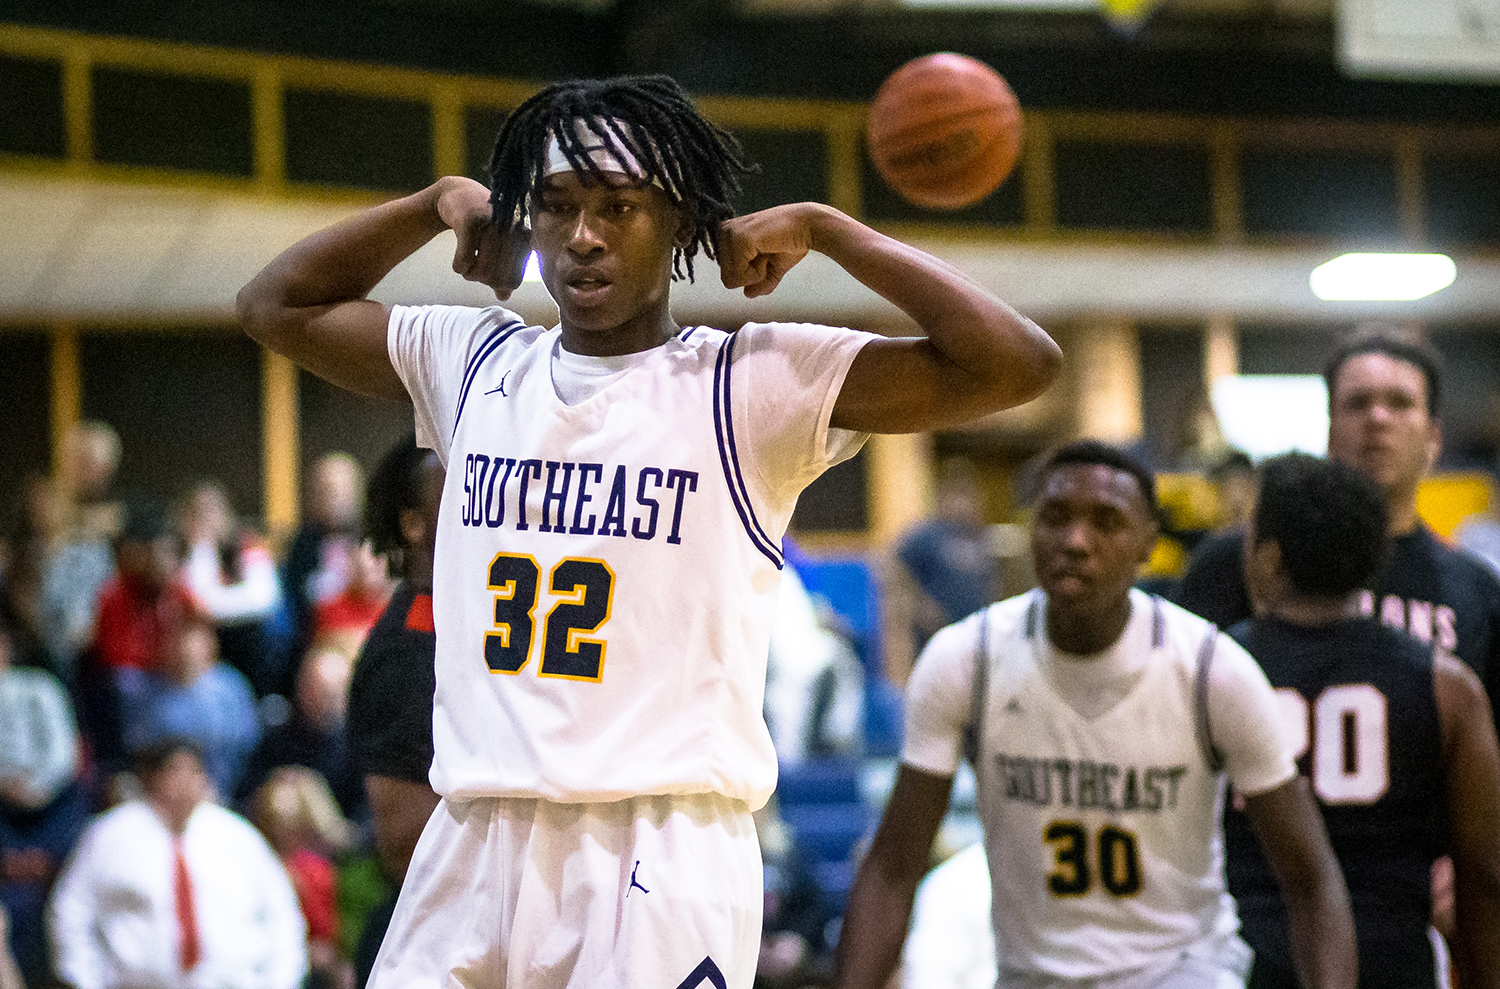 Southeast's Stepheon Sims (32) flexes after making a basket and drawing a foul against Springfield in the first half at Southeast High School, Tuesday, Feb. 5, 2019, in Springfield, Ill. [Justin L. Fowler/The State Journal-Register]